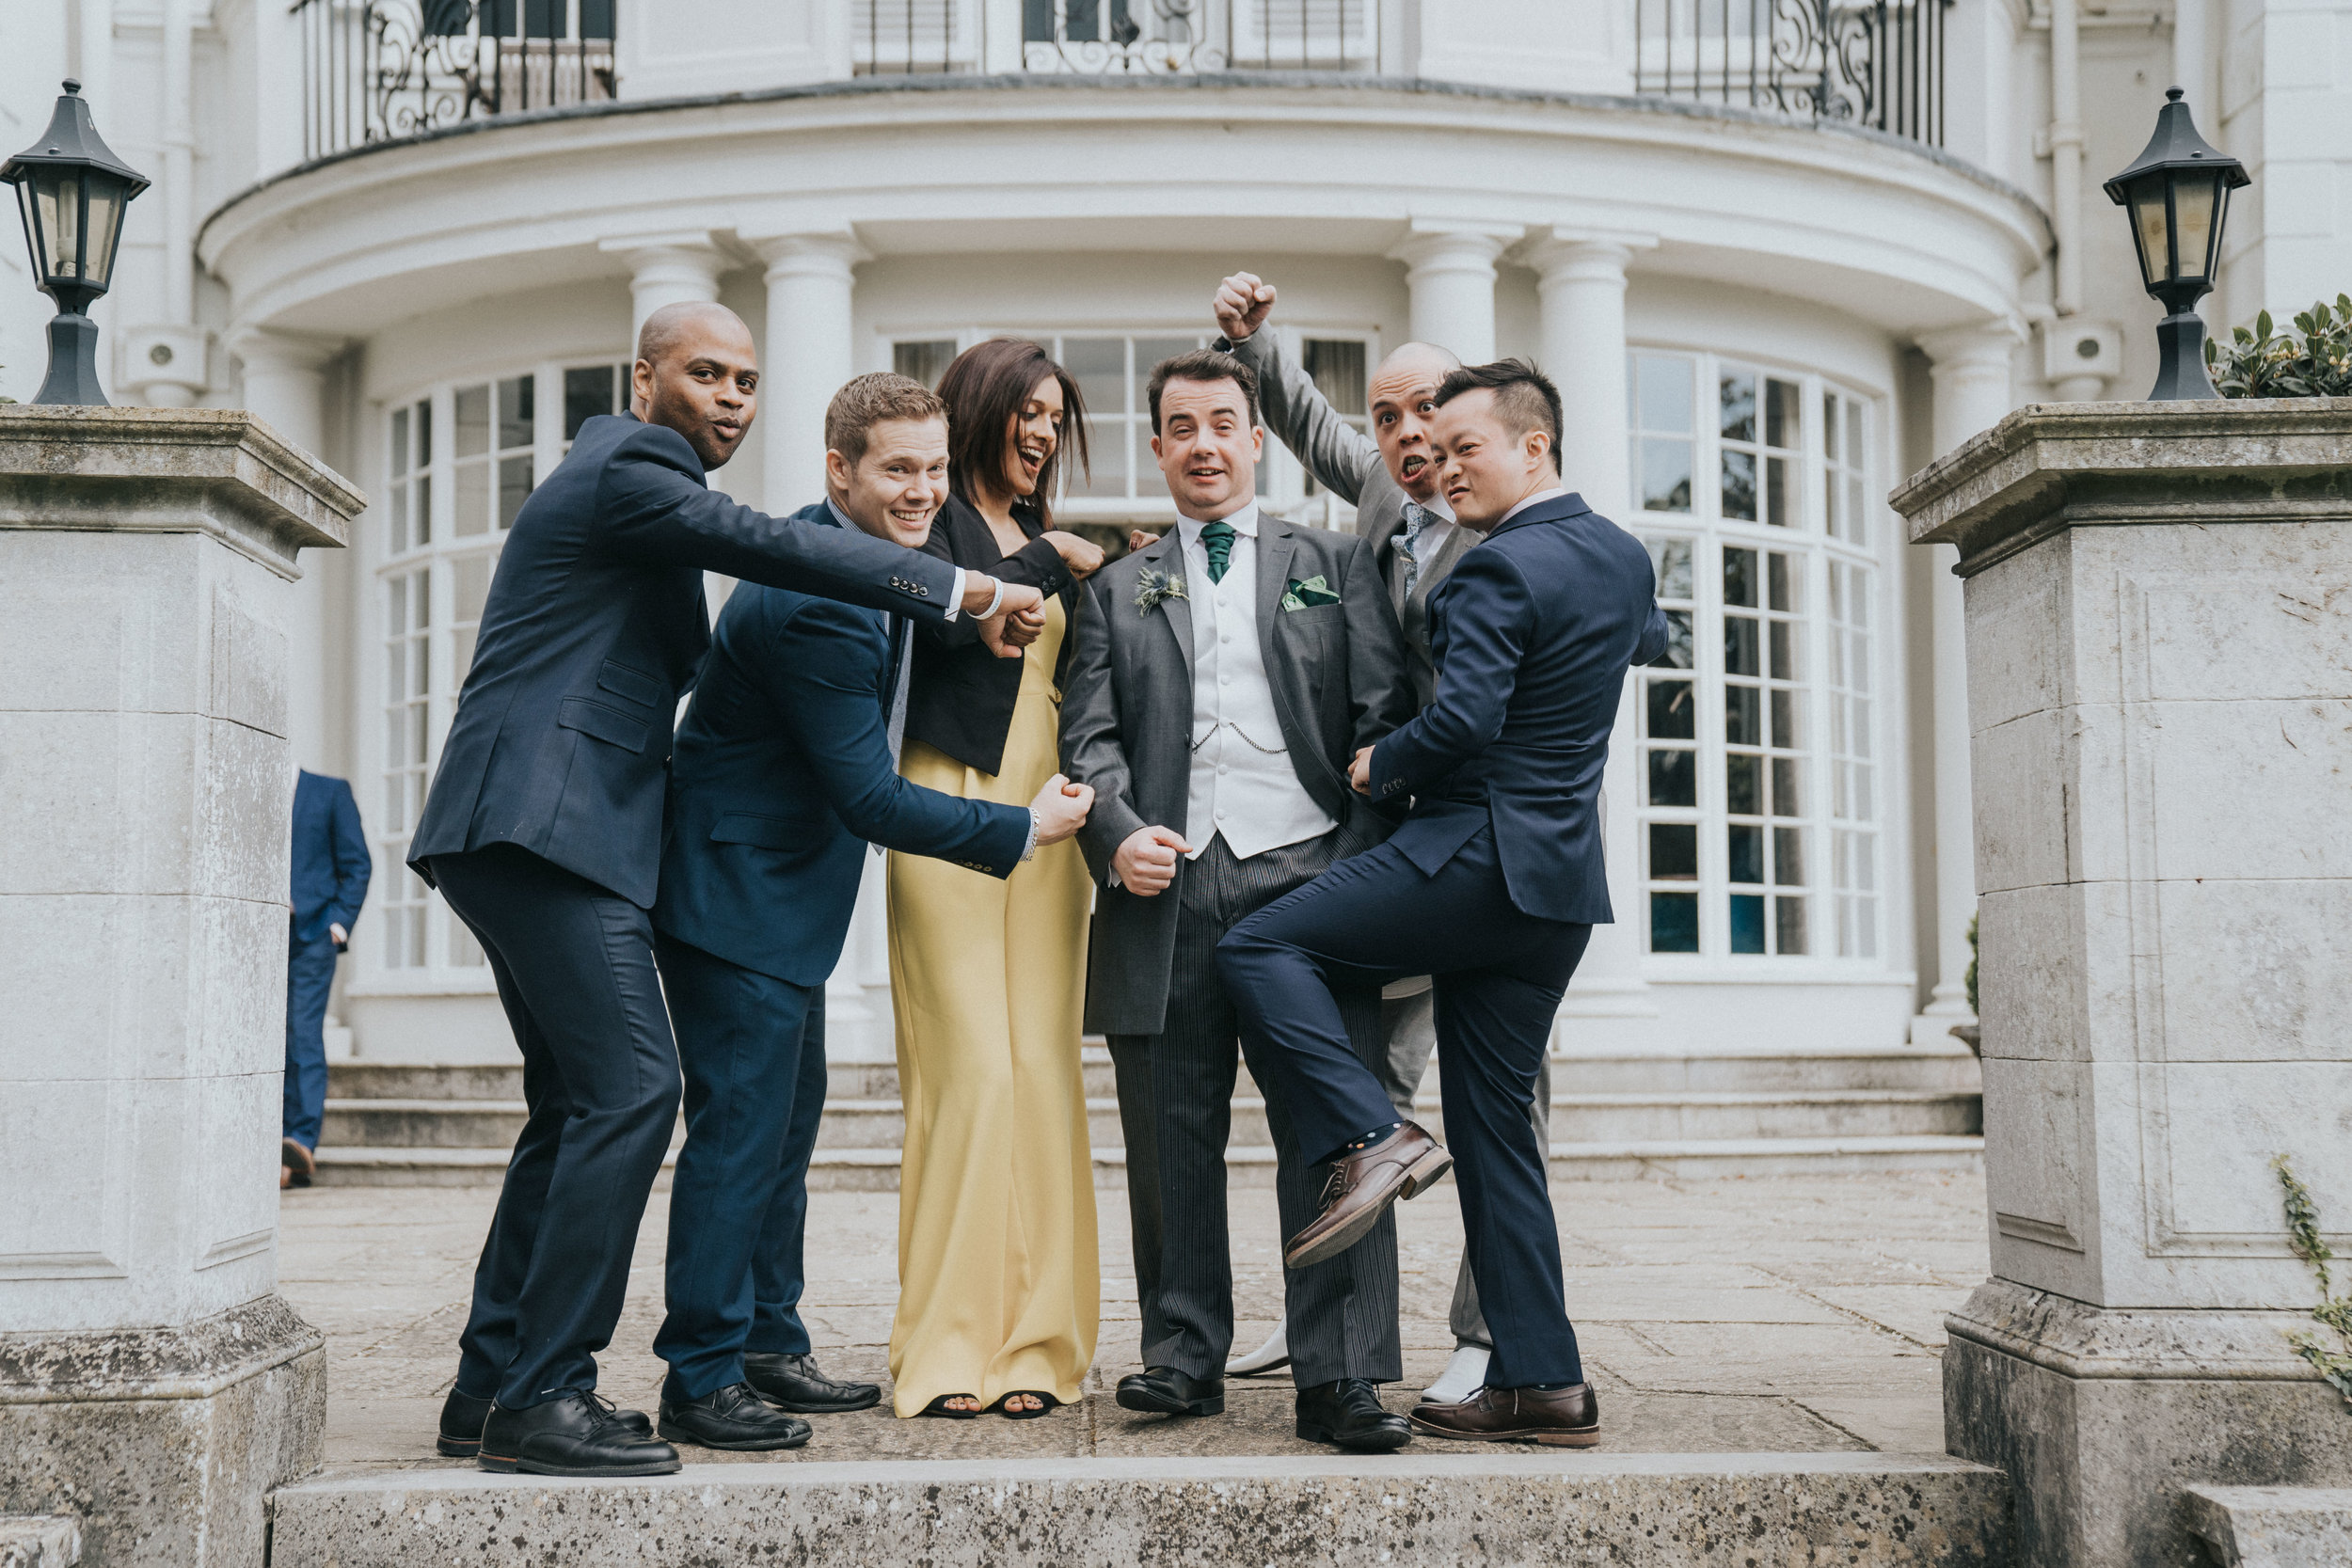 gorse-hill-hotel-wedding-photography-videography-surrey-london-41